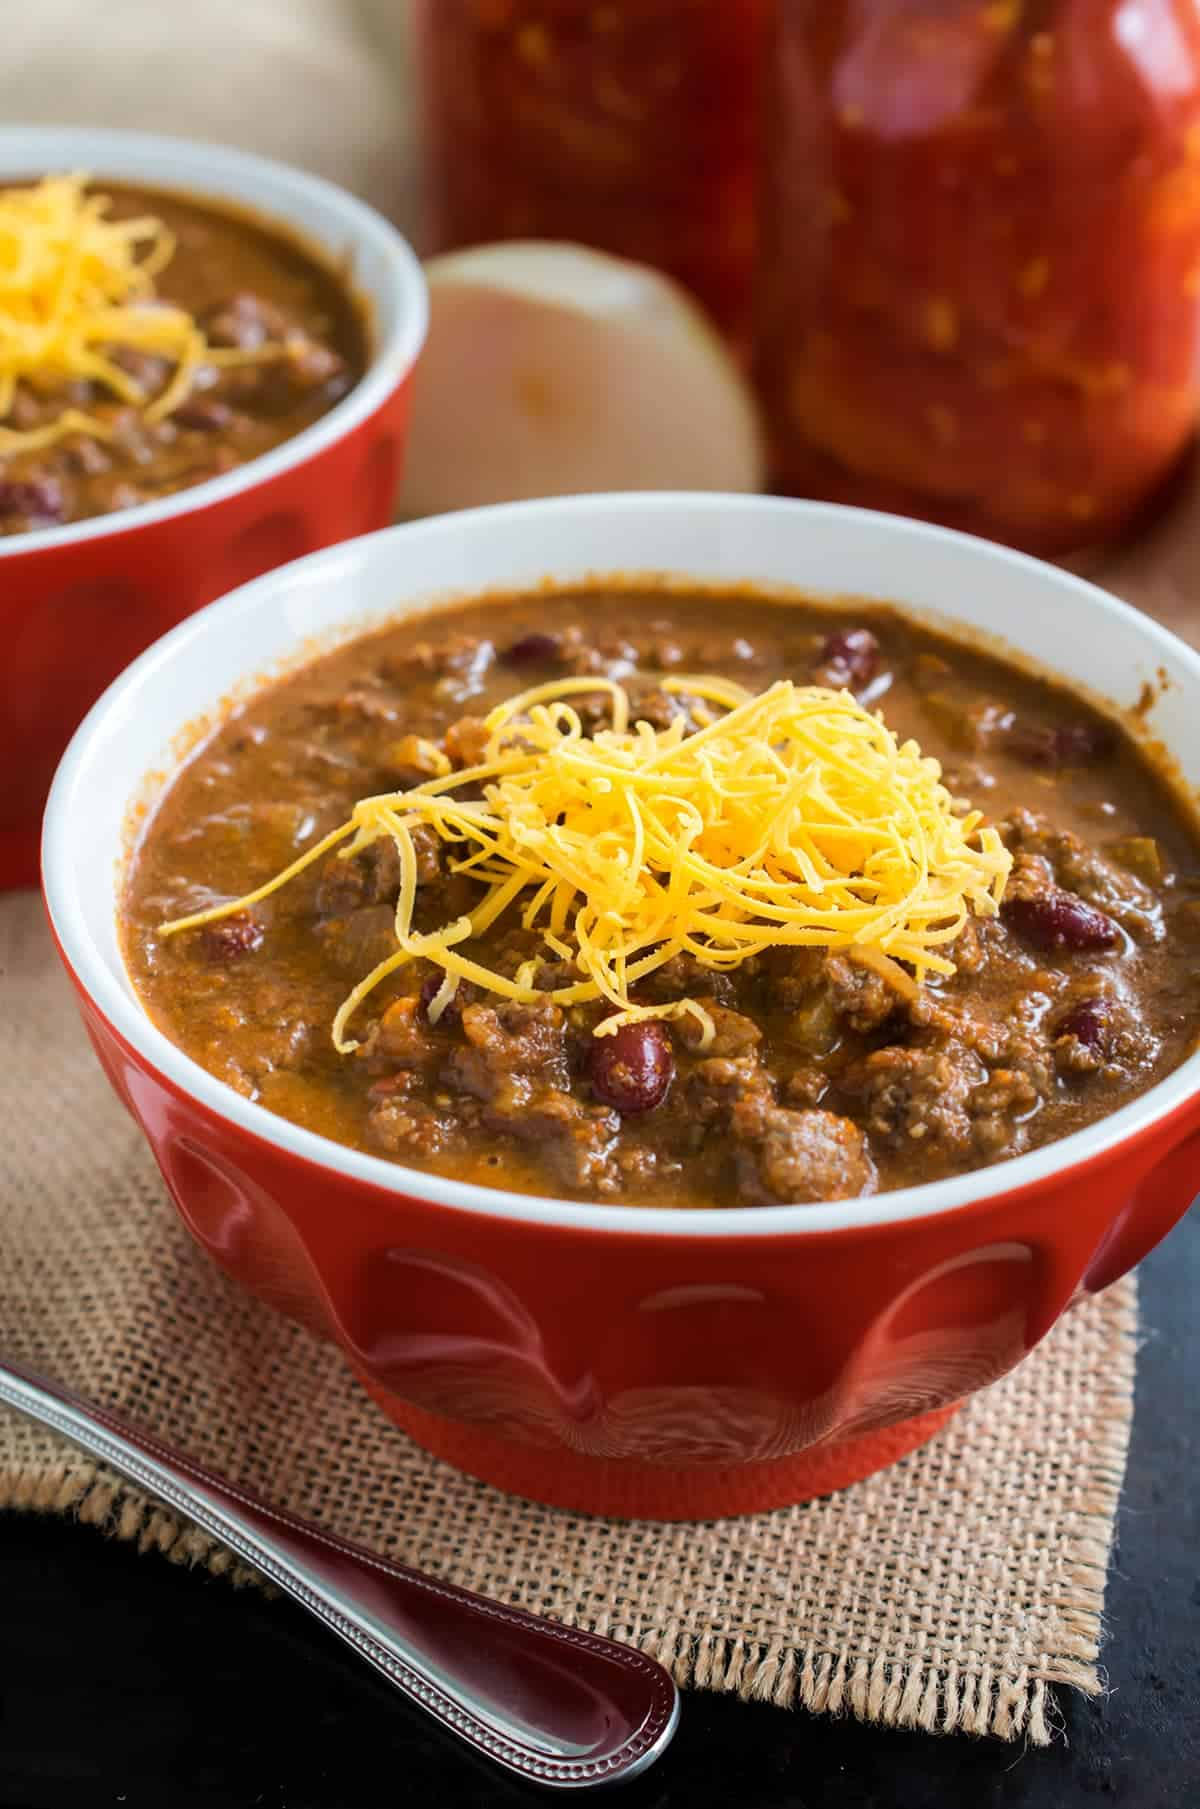 Hearty and comforting Cincinnati style chili with freshly grated cheddar in red bowl on burlap placemat with spoon